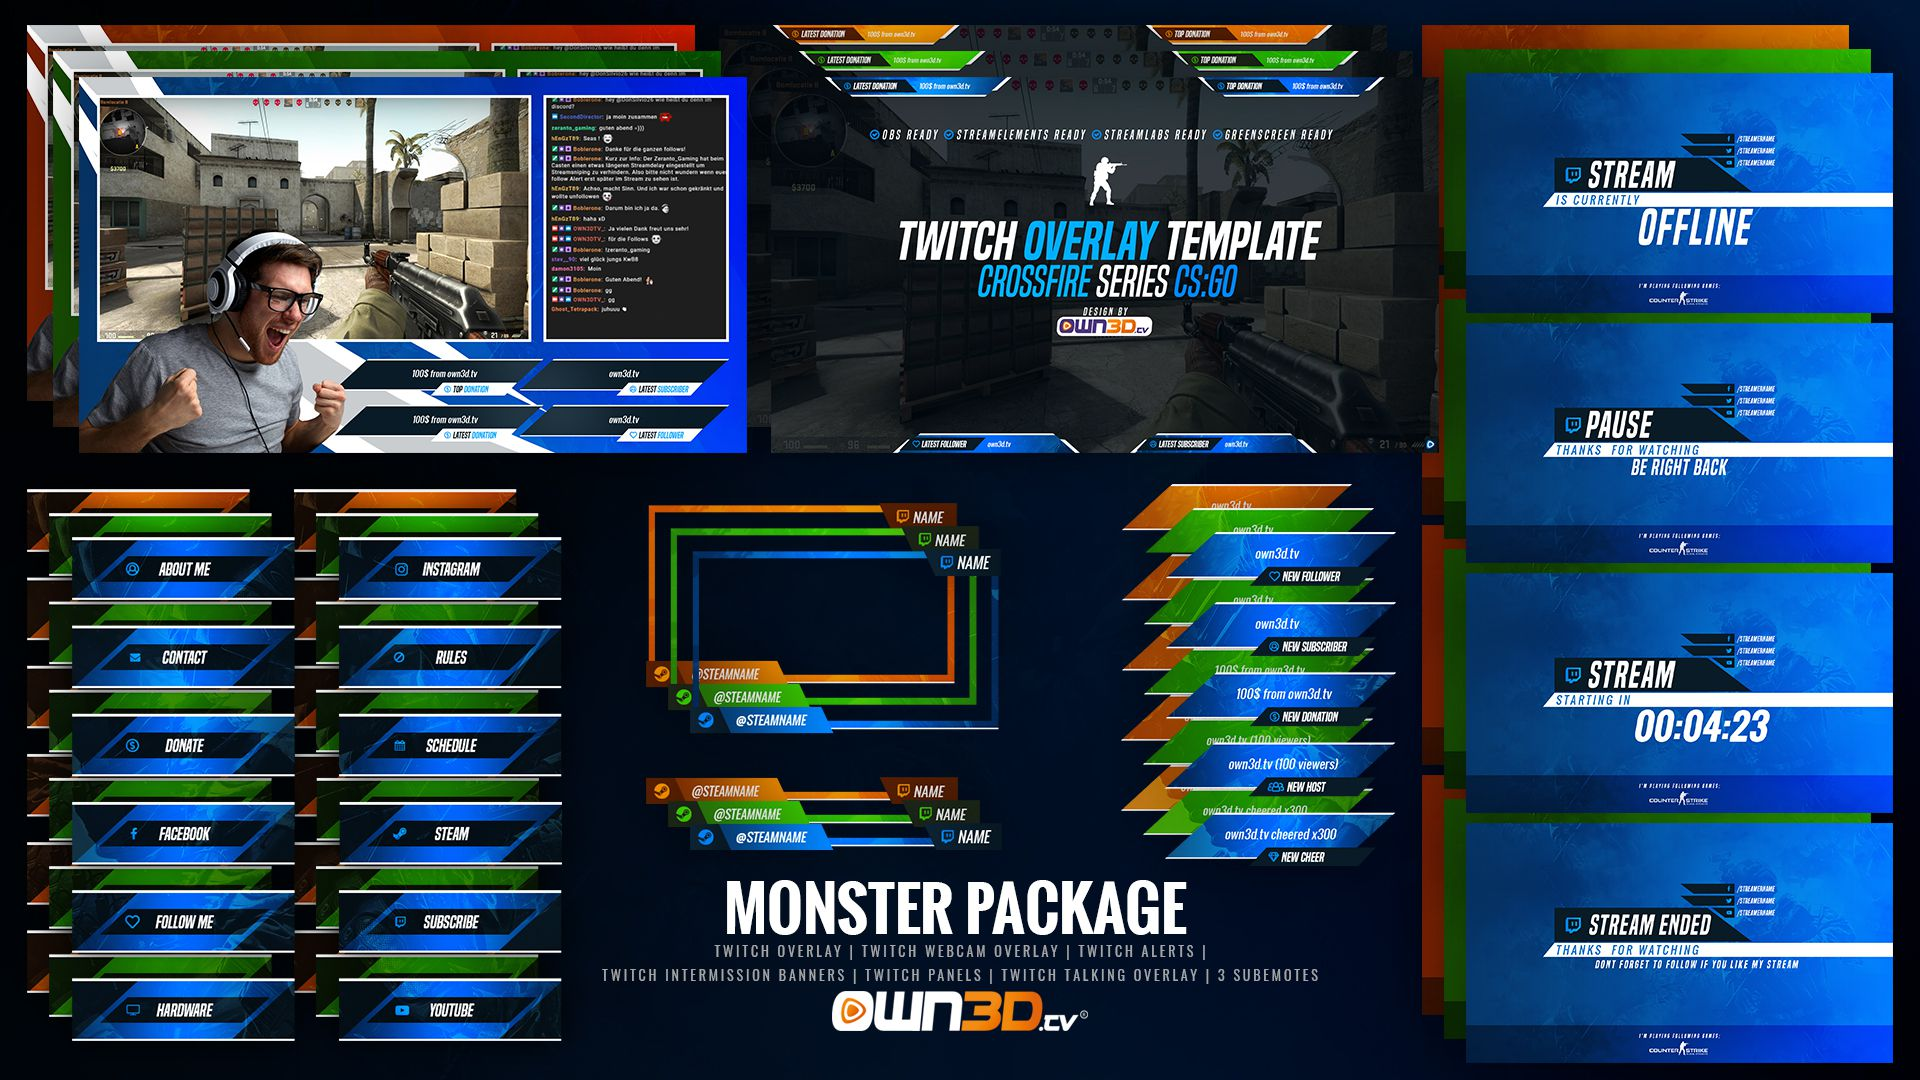 crossfire-series-ALL-twitch-overlay-package-03-monster.jpg